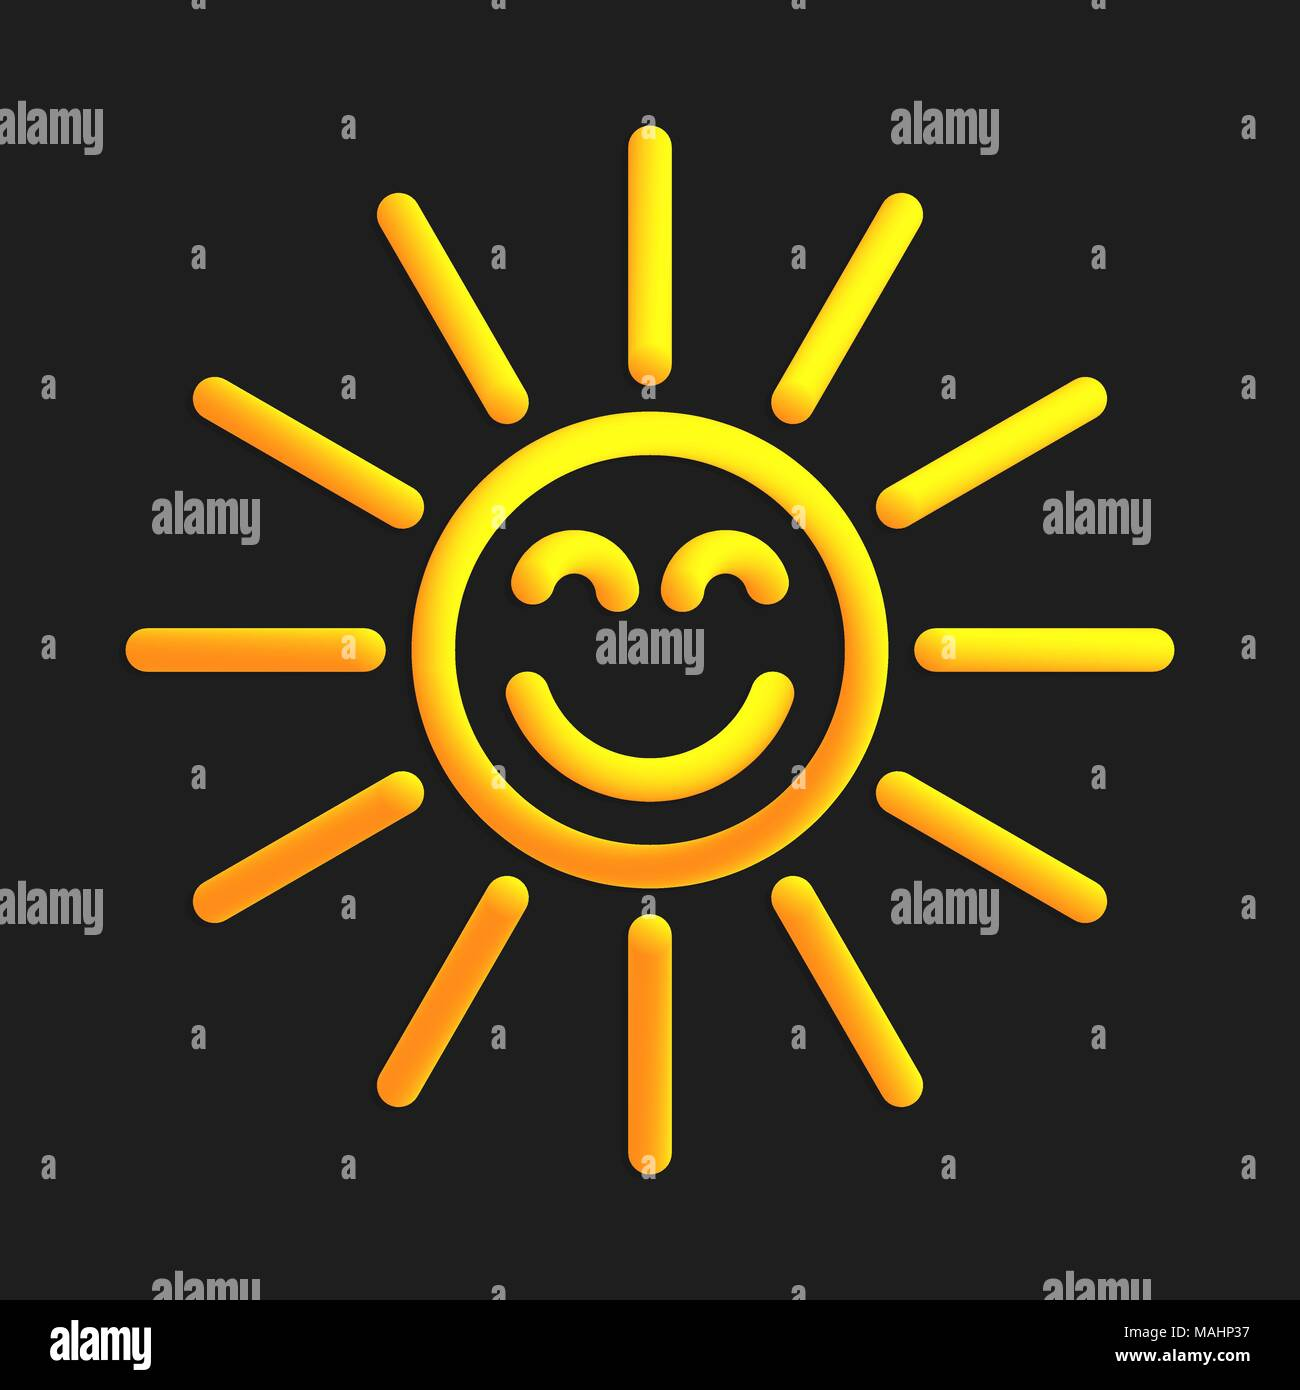 Sun with straight rays in 3d style. Vector illustration of yellow sun with liquid effect of gradient color in volumetric style. Isolated object with s - Stock Vector